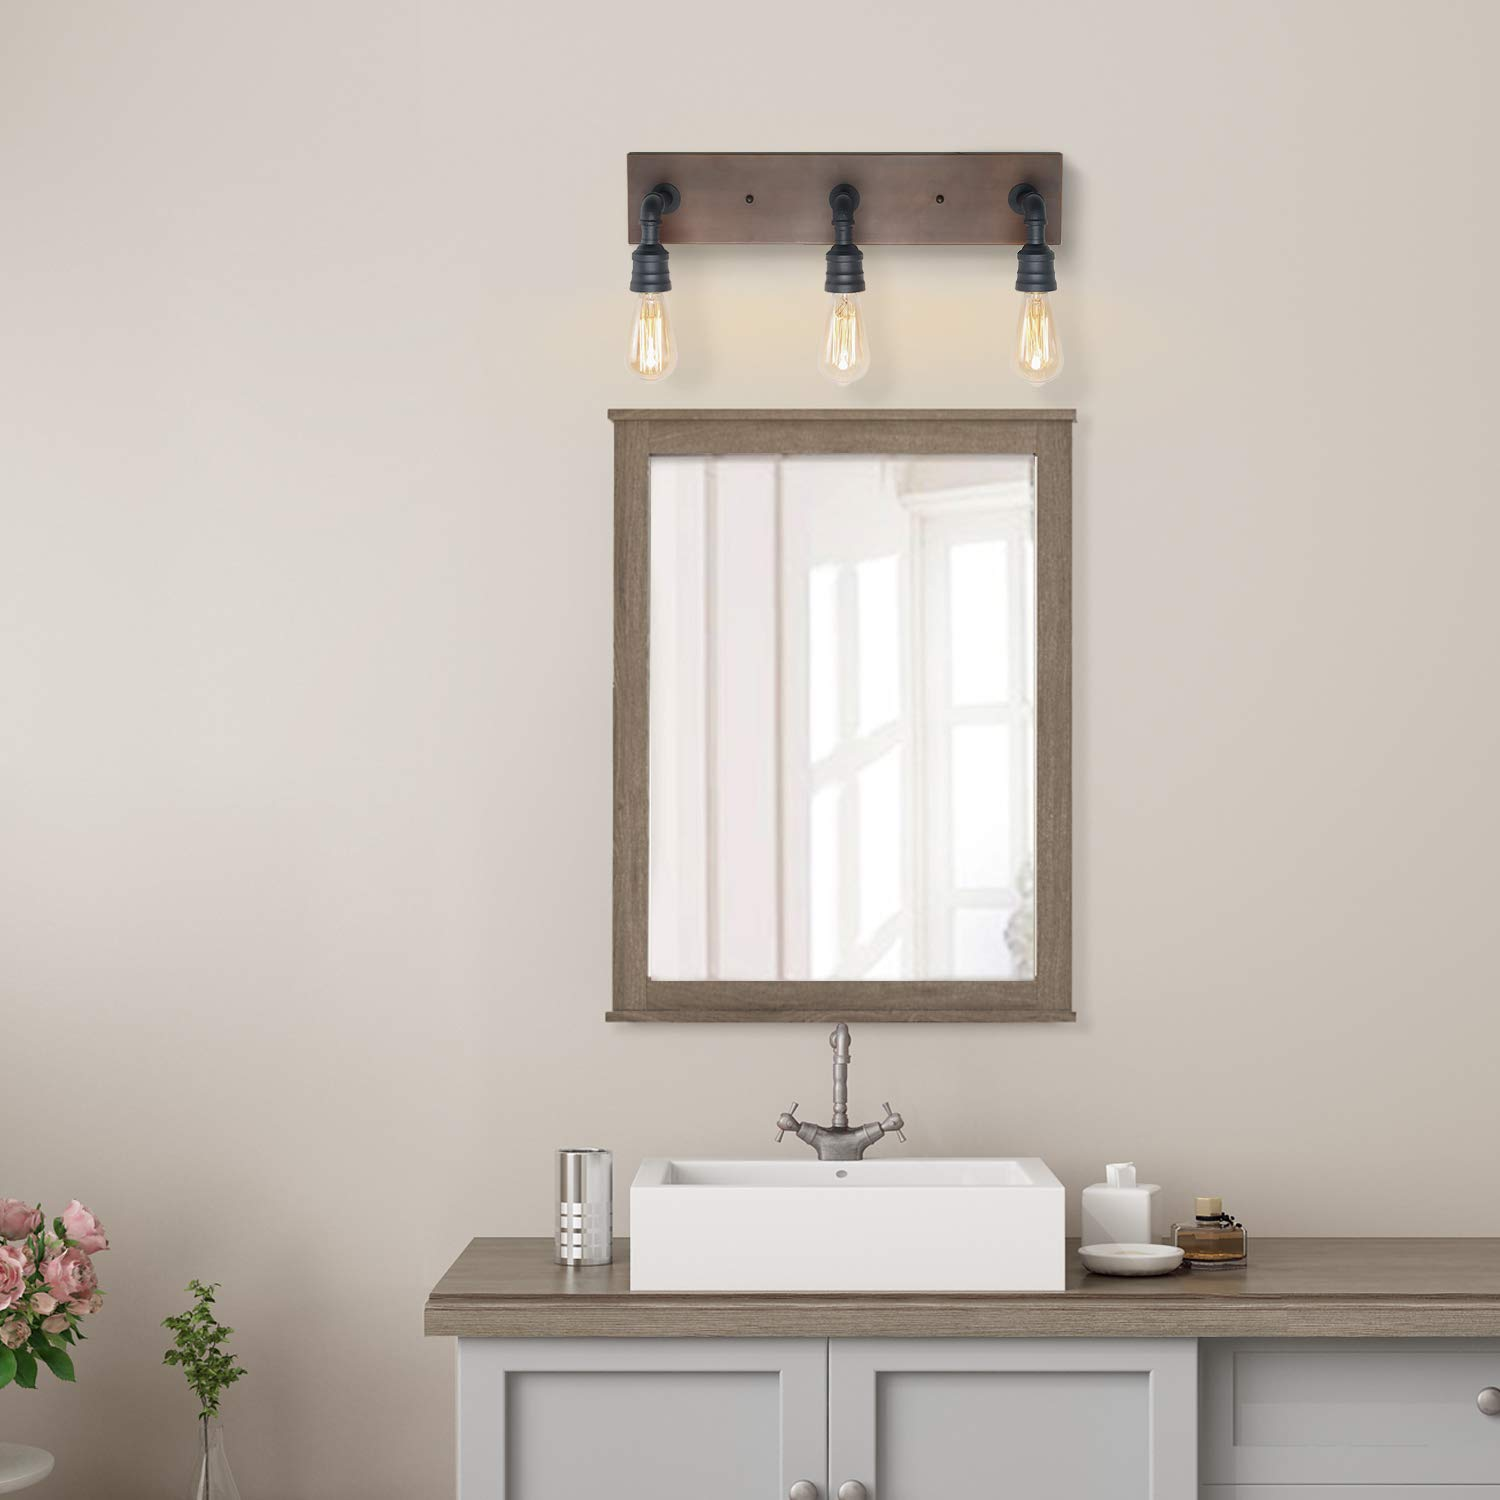 LNC Bathroom Vanity Lights, Farmhouse Wood and Water Pipe Wall Sconces(3 Heads )A03376, by LNC (Image #4)